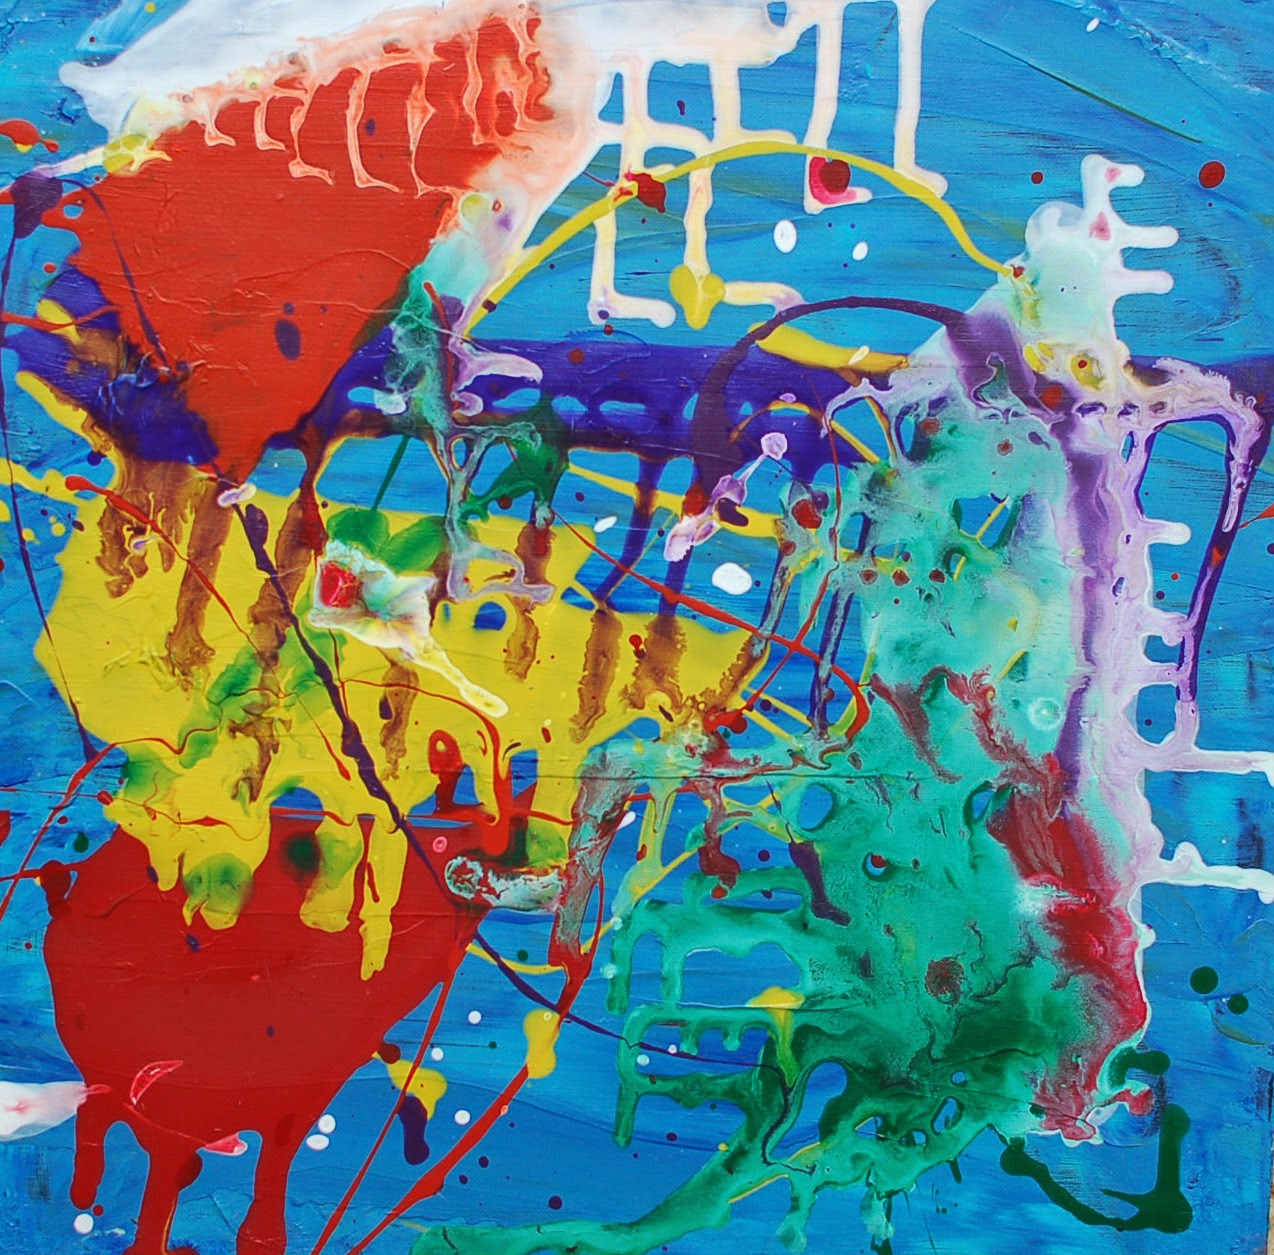 abstract painting with kids including more splatter painting - Painting Pics For Kids